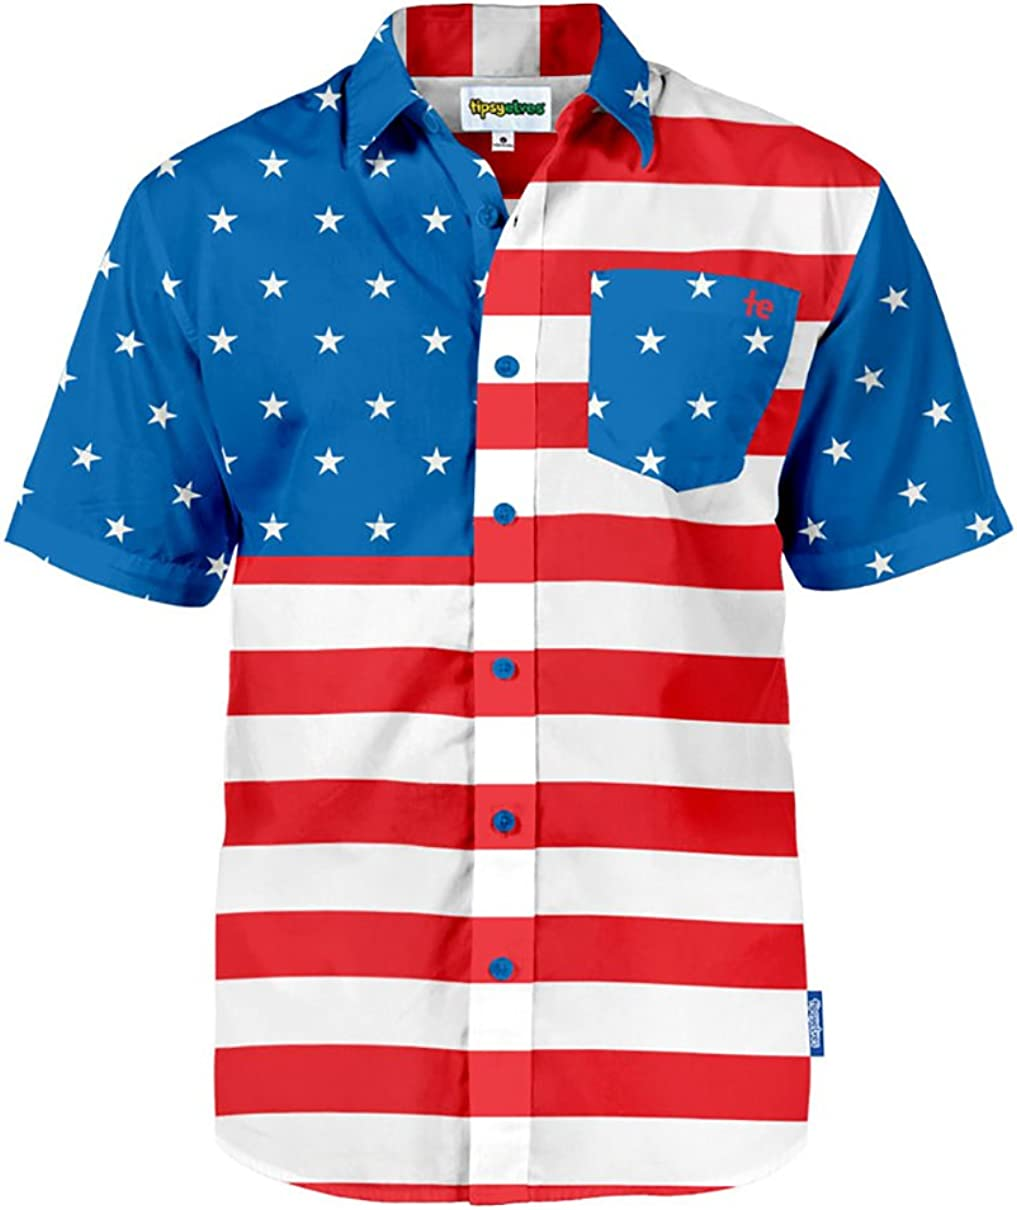 Tipsy Elves Men's American Flag Button Down Shirts - Patriotic USA Red White and Blue Hawaiian Shirts